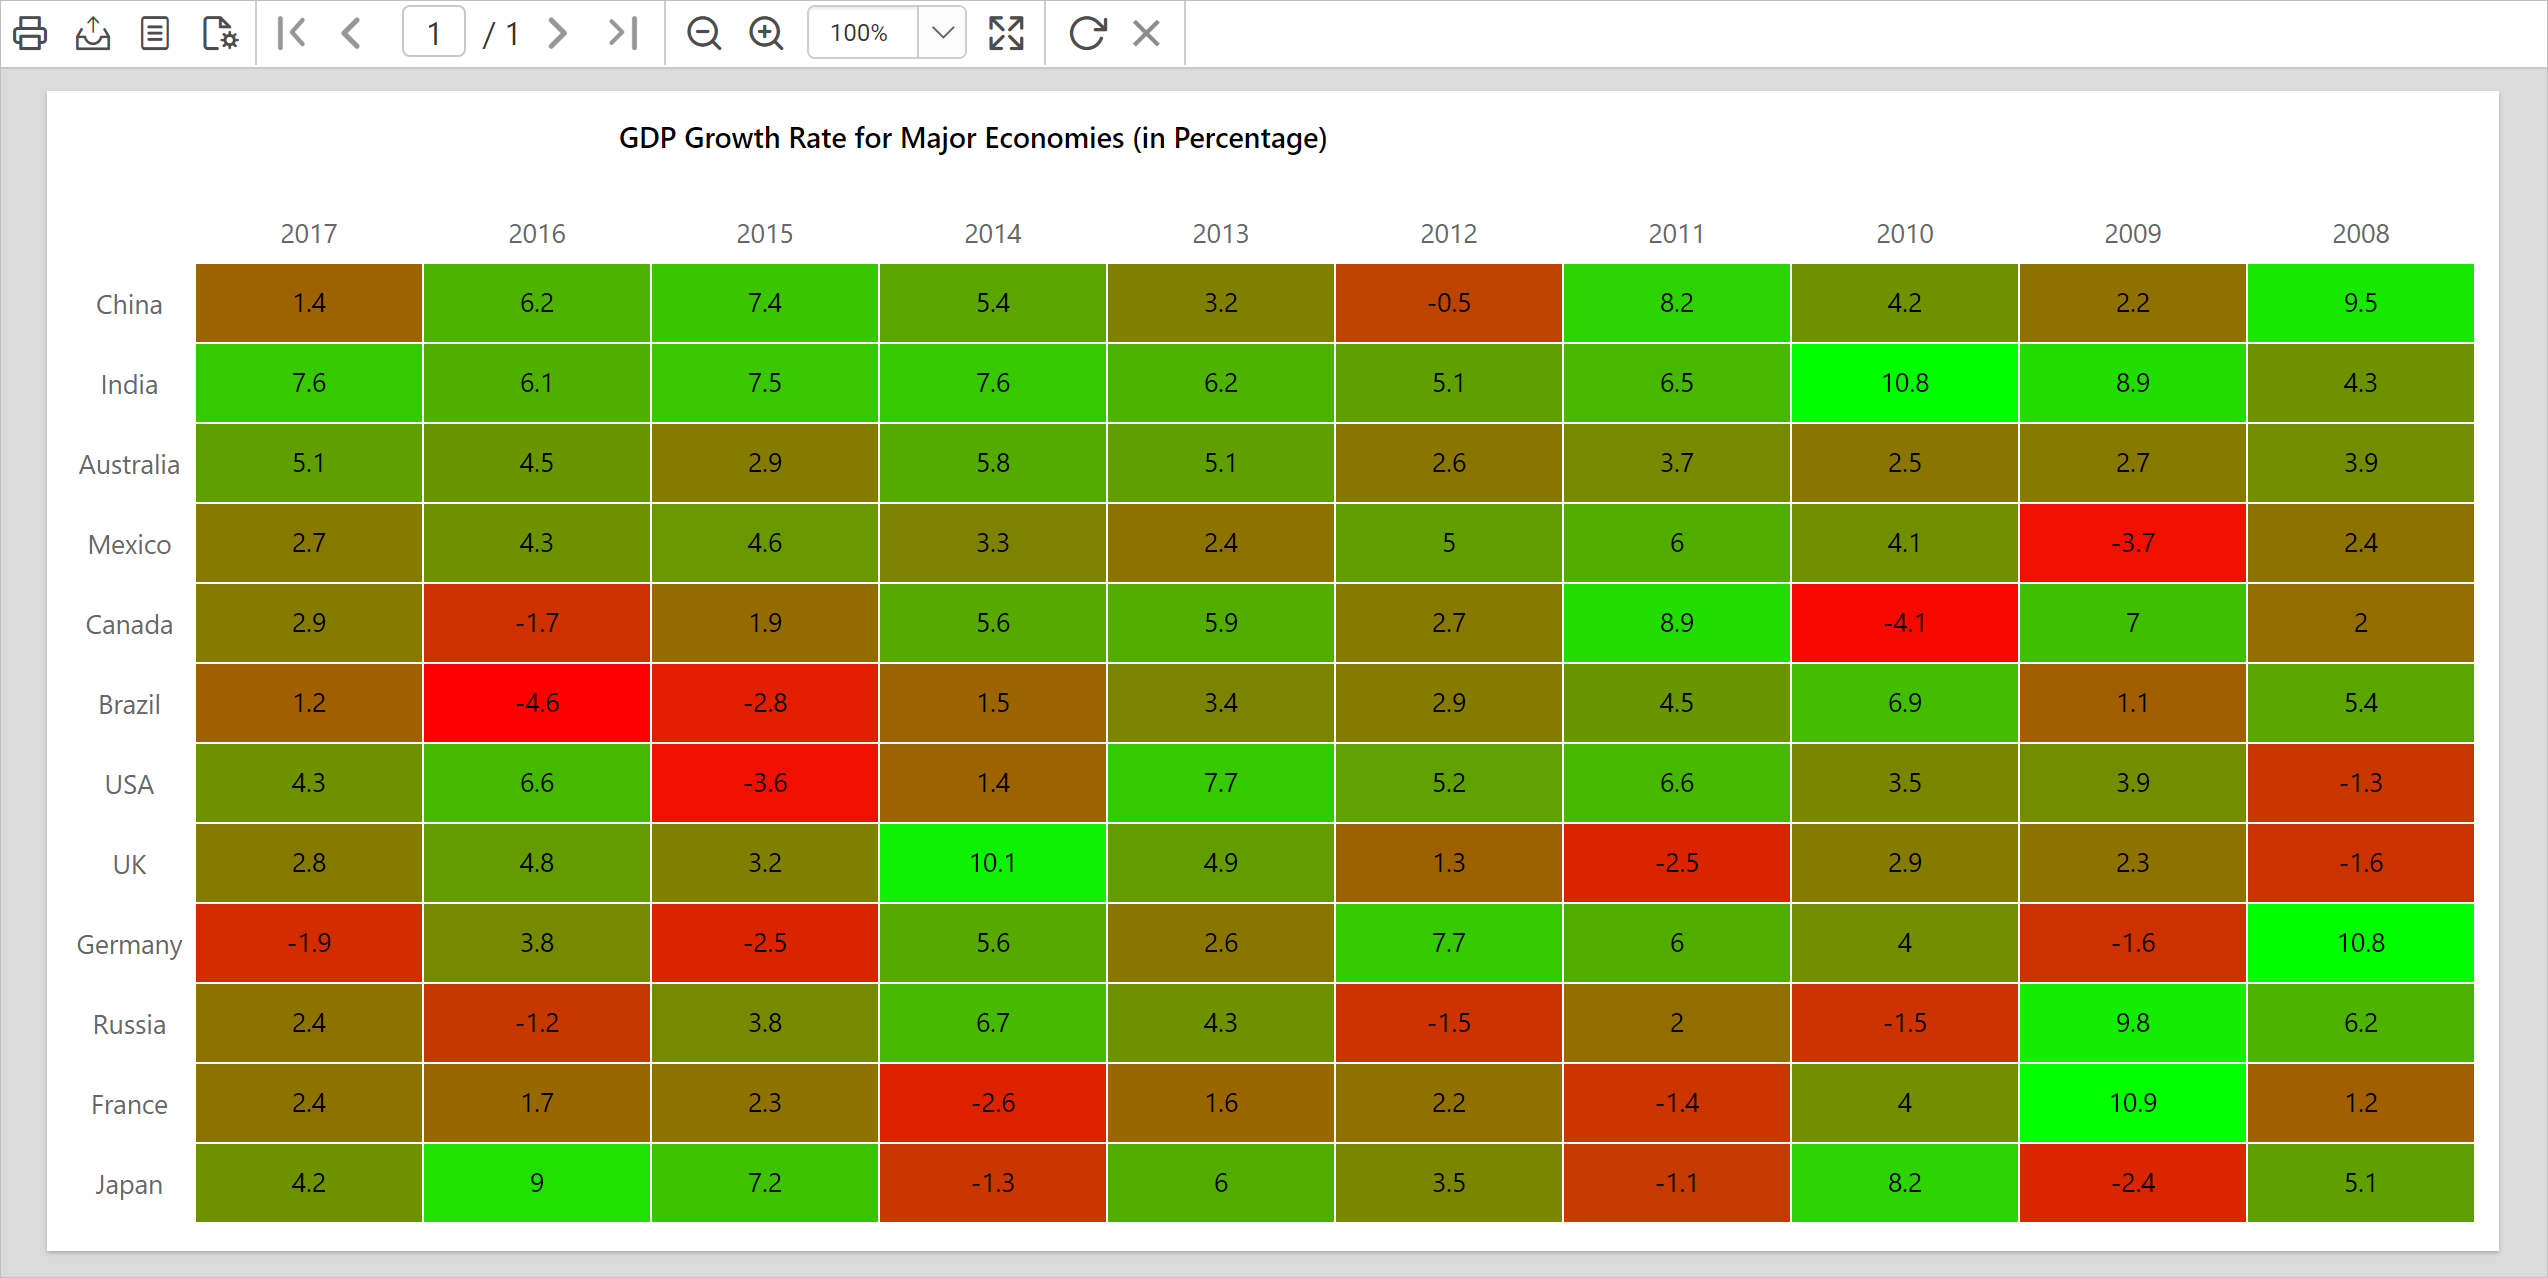 Heat map showcases GDP growth rate for major economies